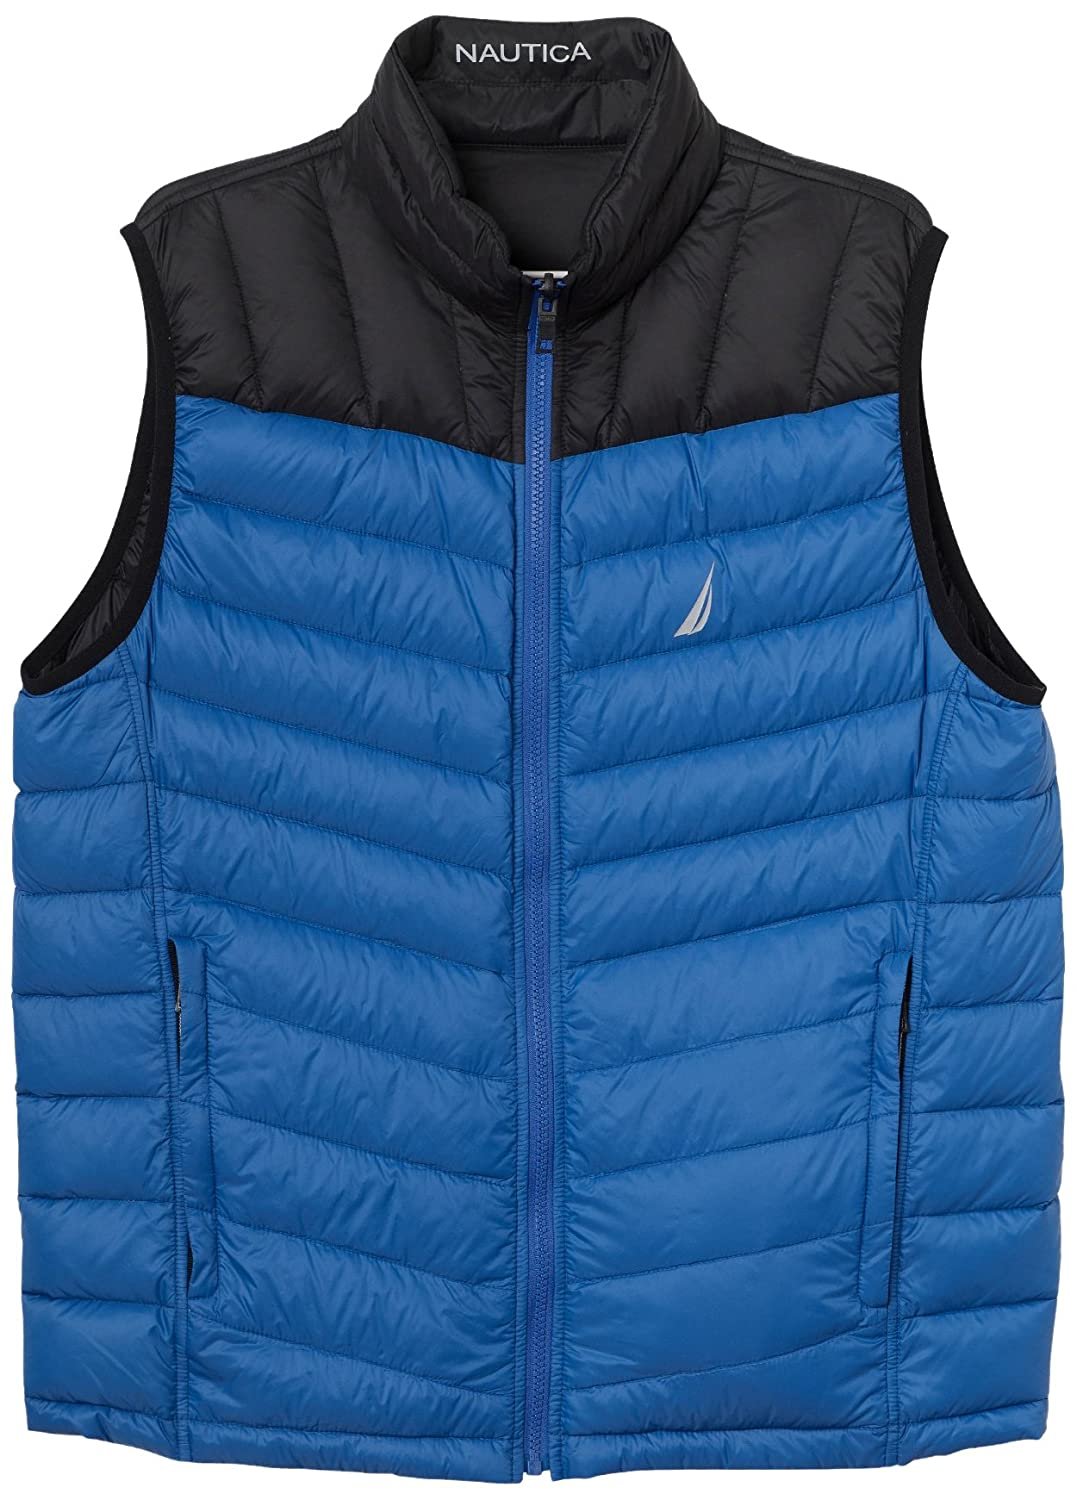 Nautica Men's Nylon Down Filled Colorblock Reversible Vest J73600